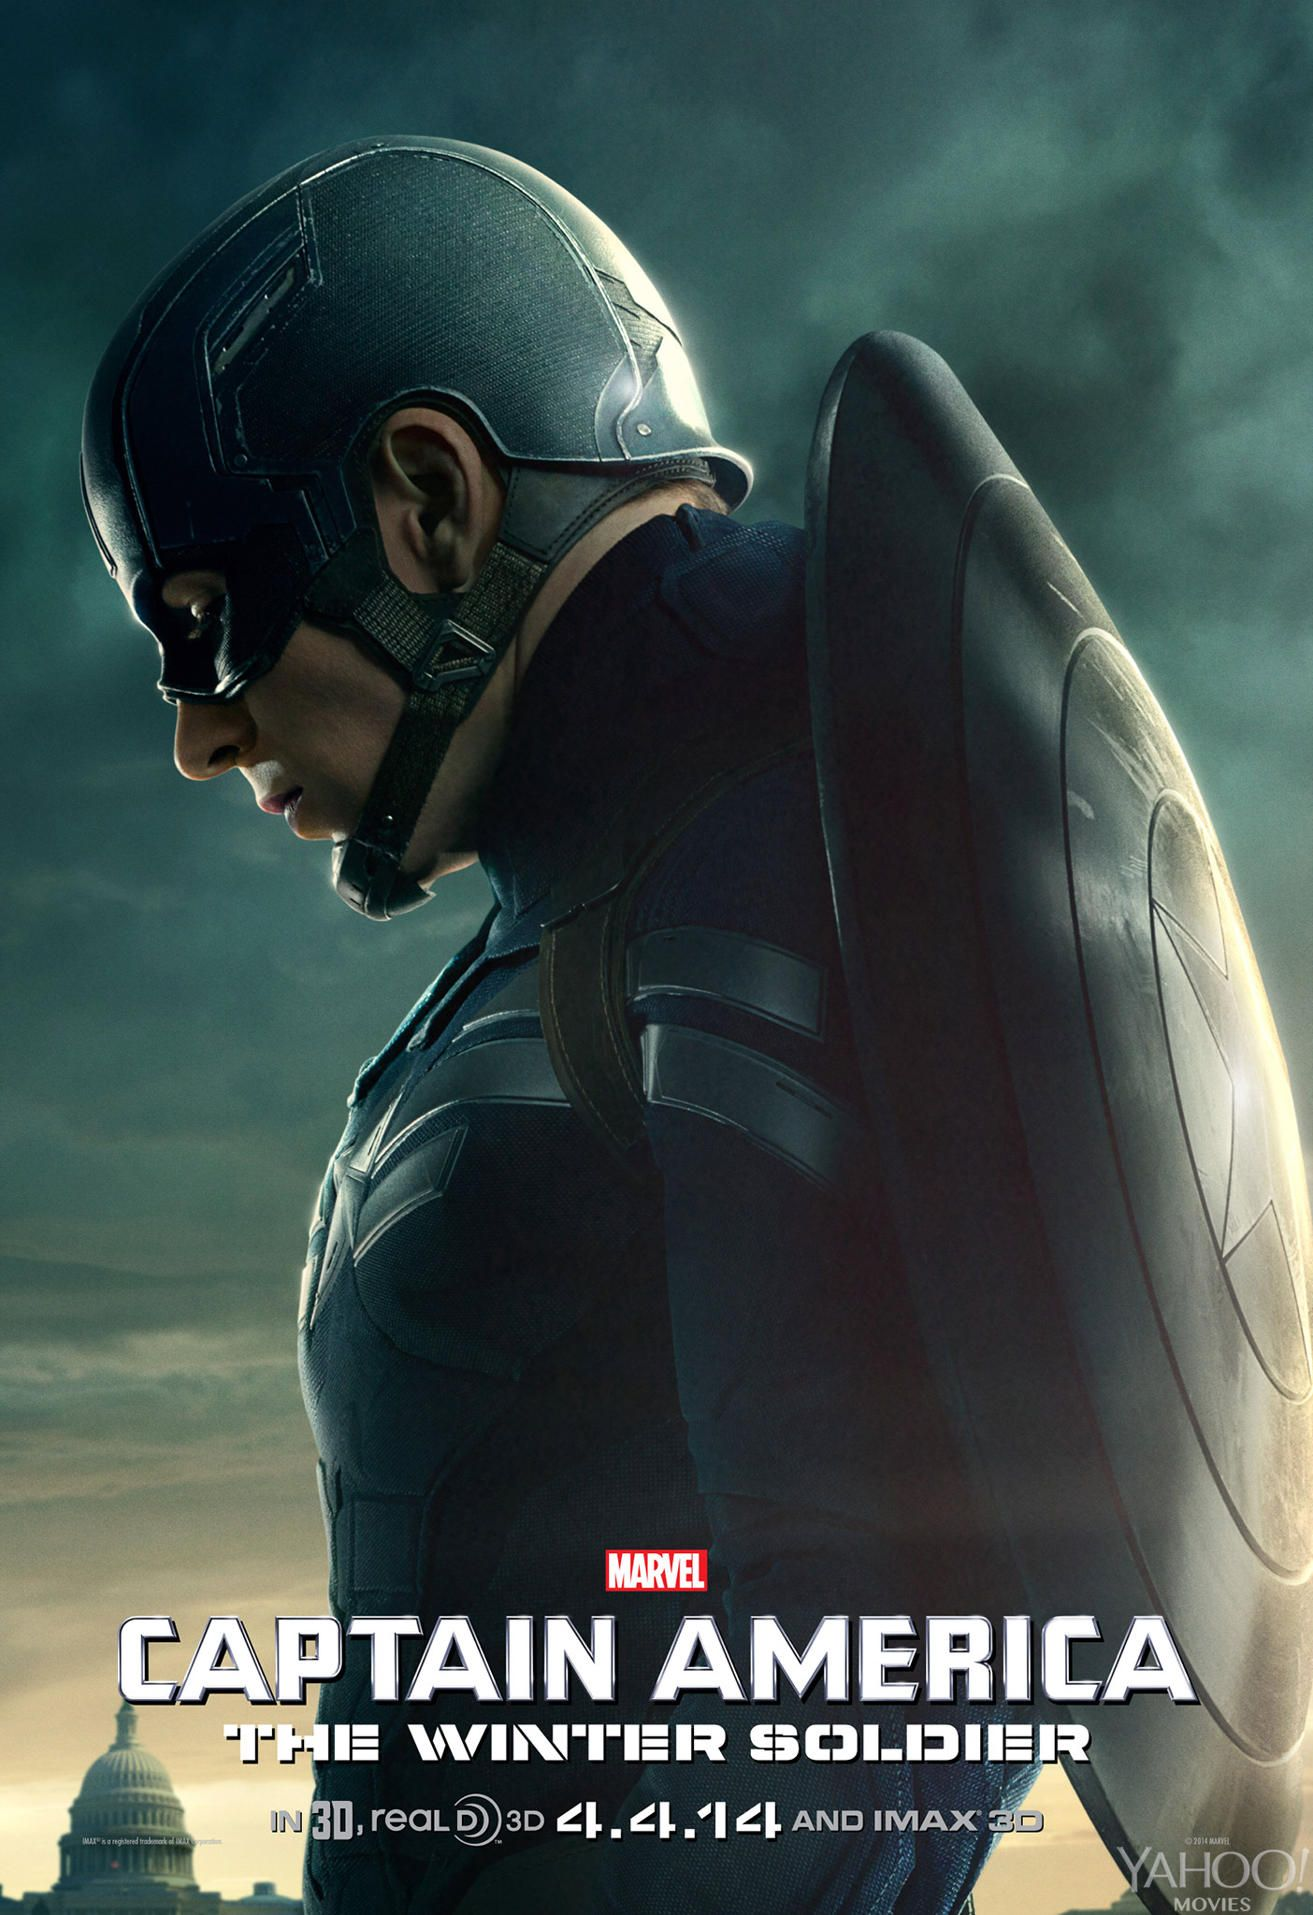 CAPTAIN AMERICA: THE WINTER SOLDIER Posters | Collider